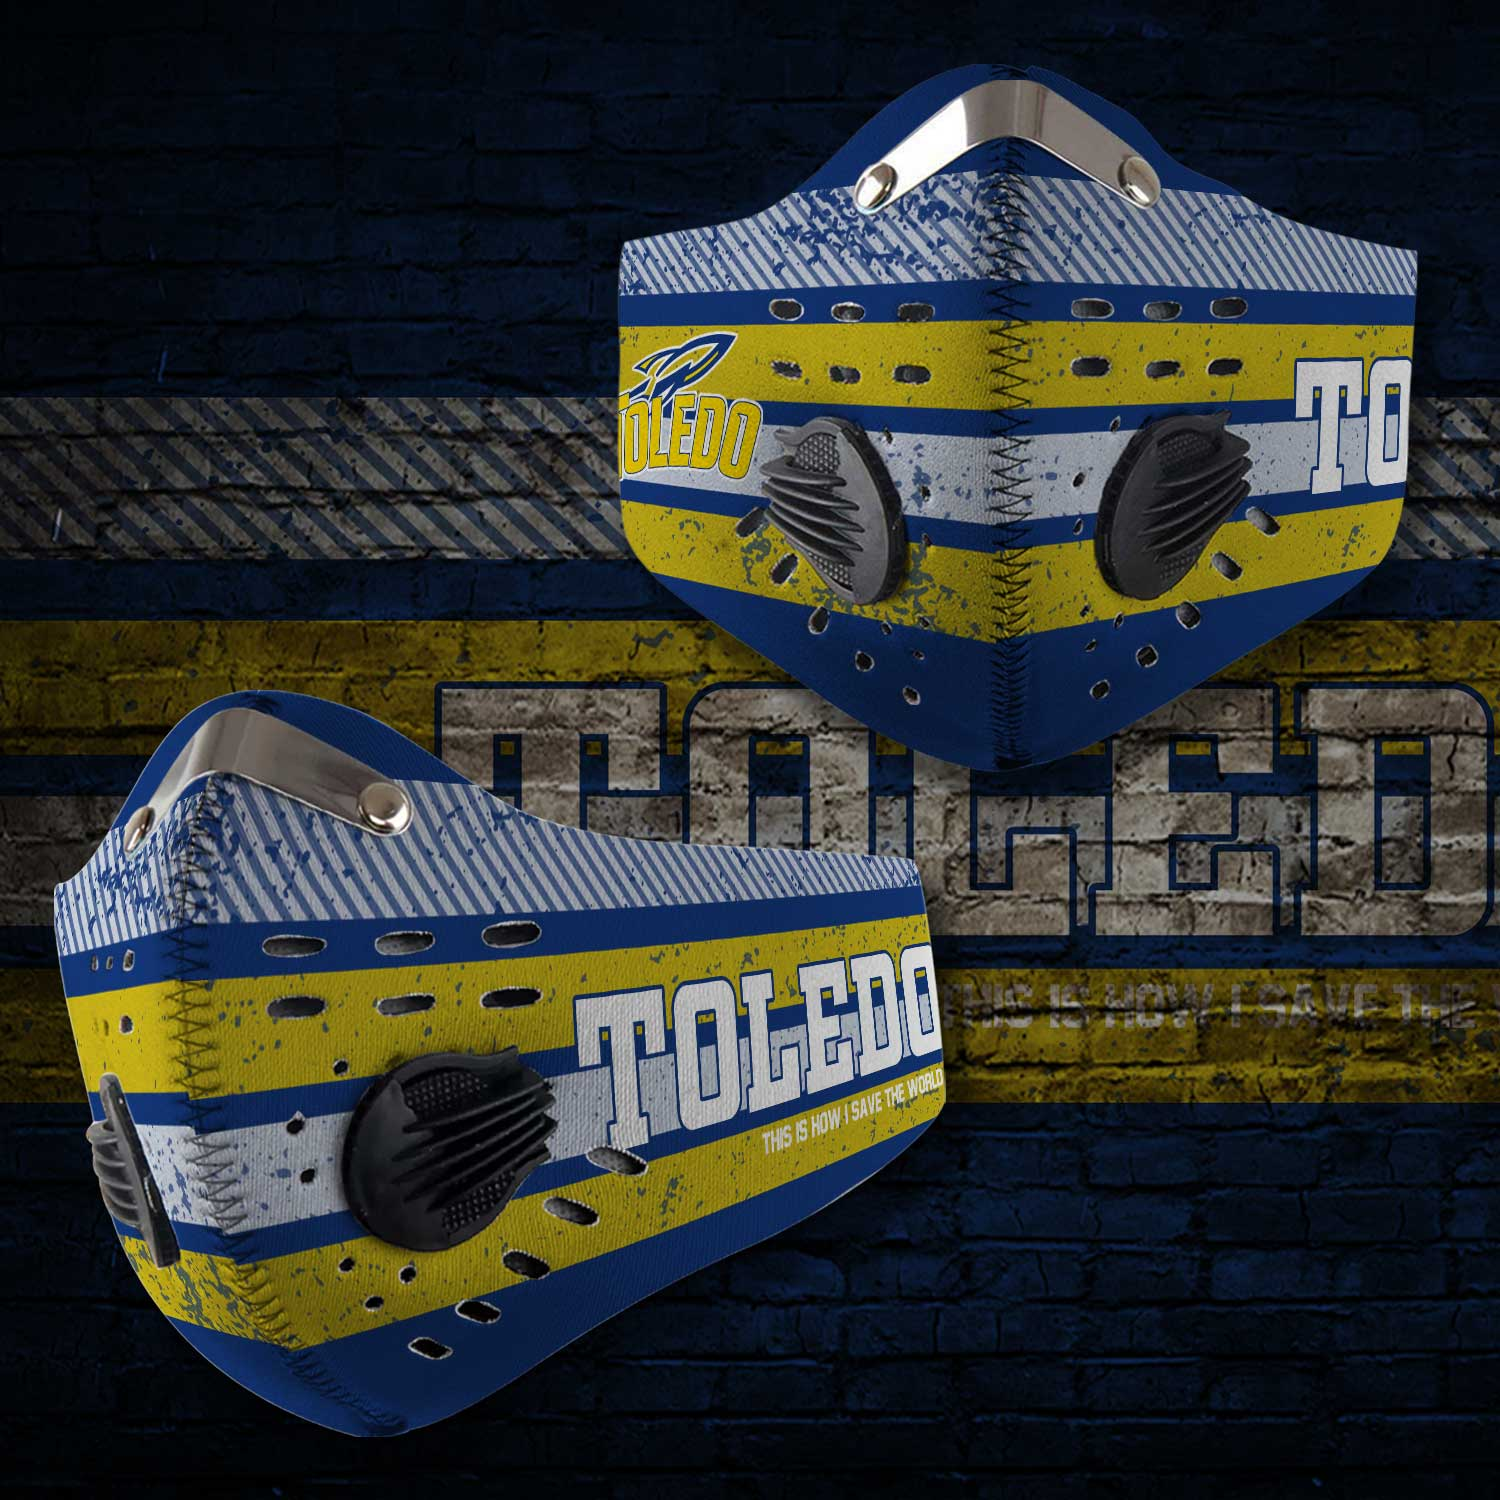 Toledo rockets this is how i save the world carbon filter face mask 1